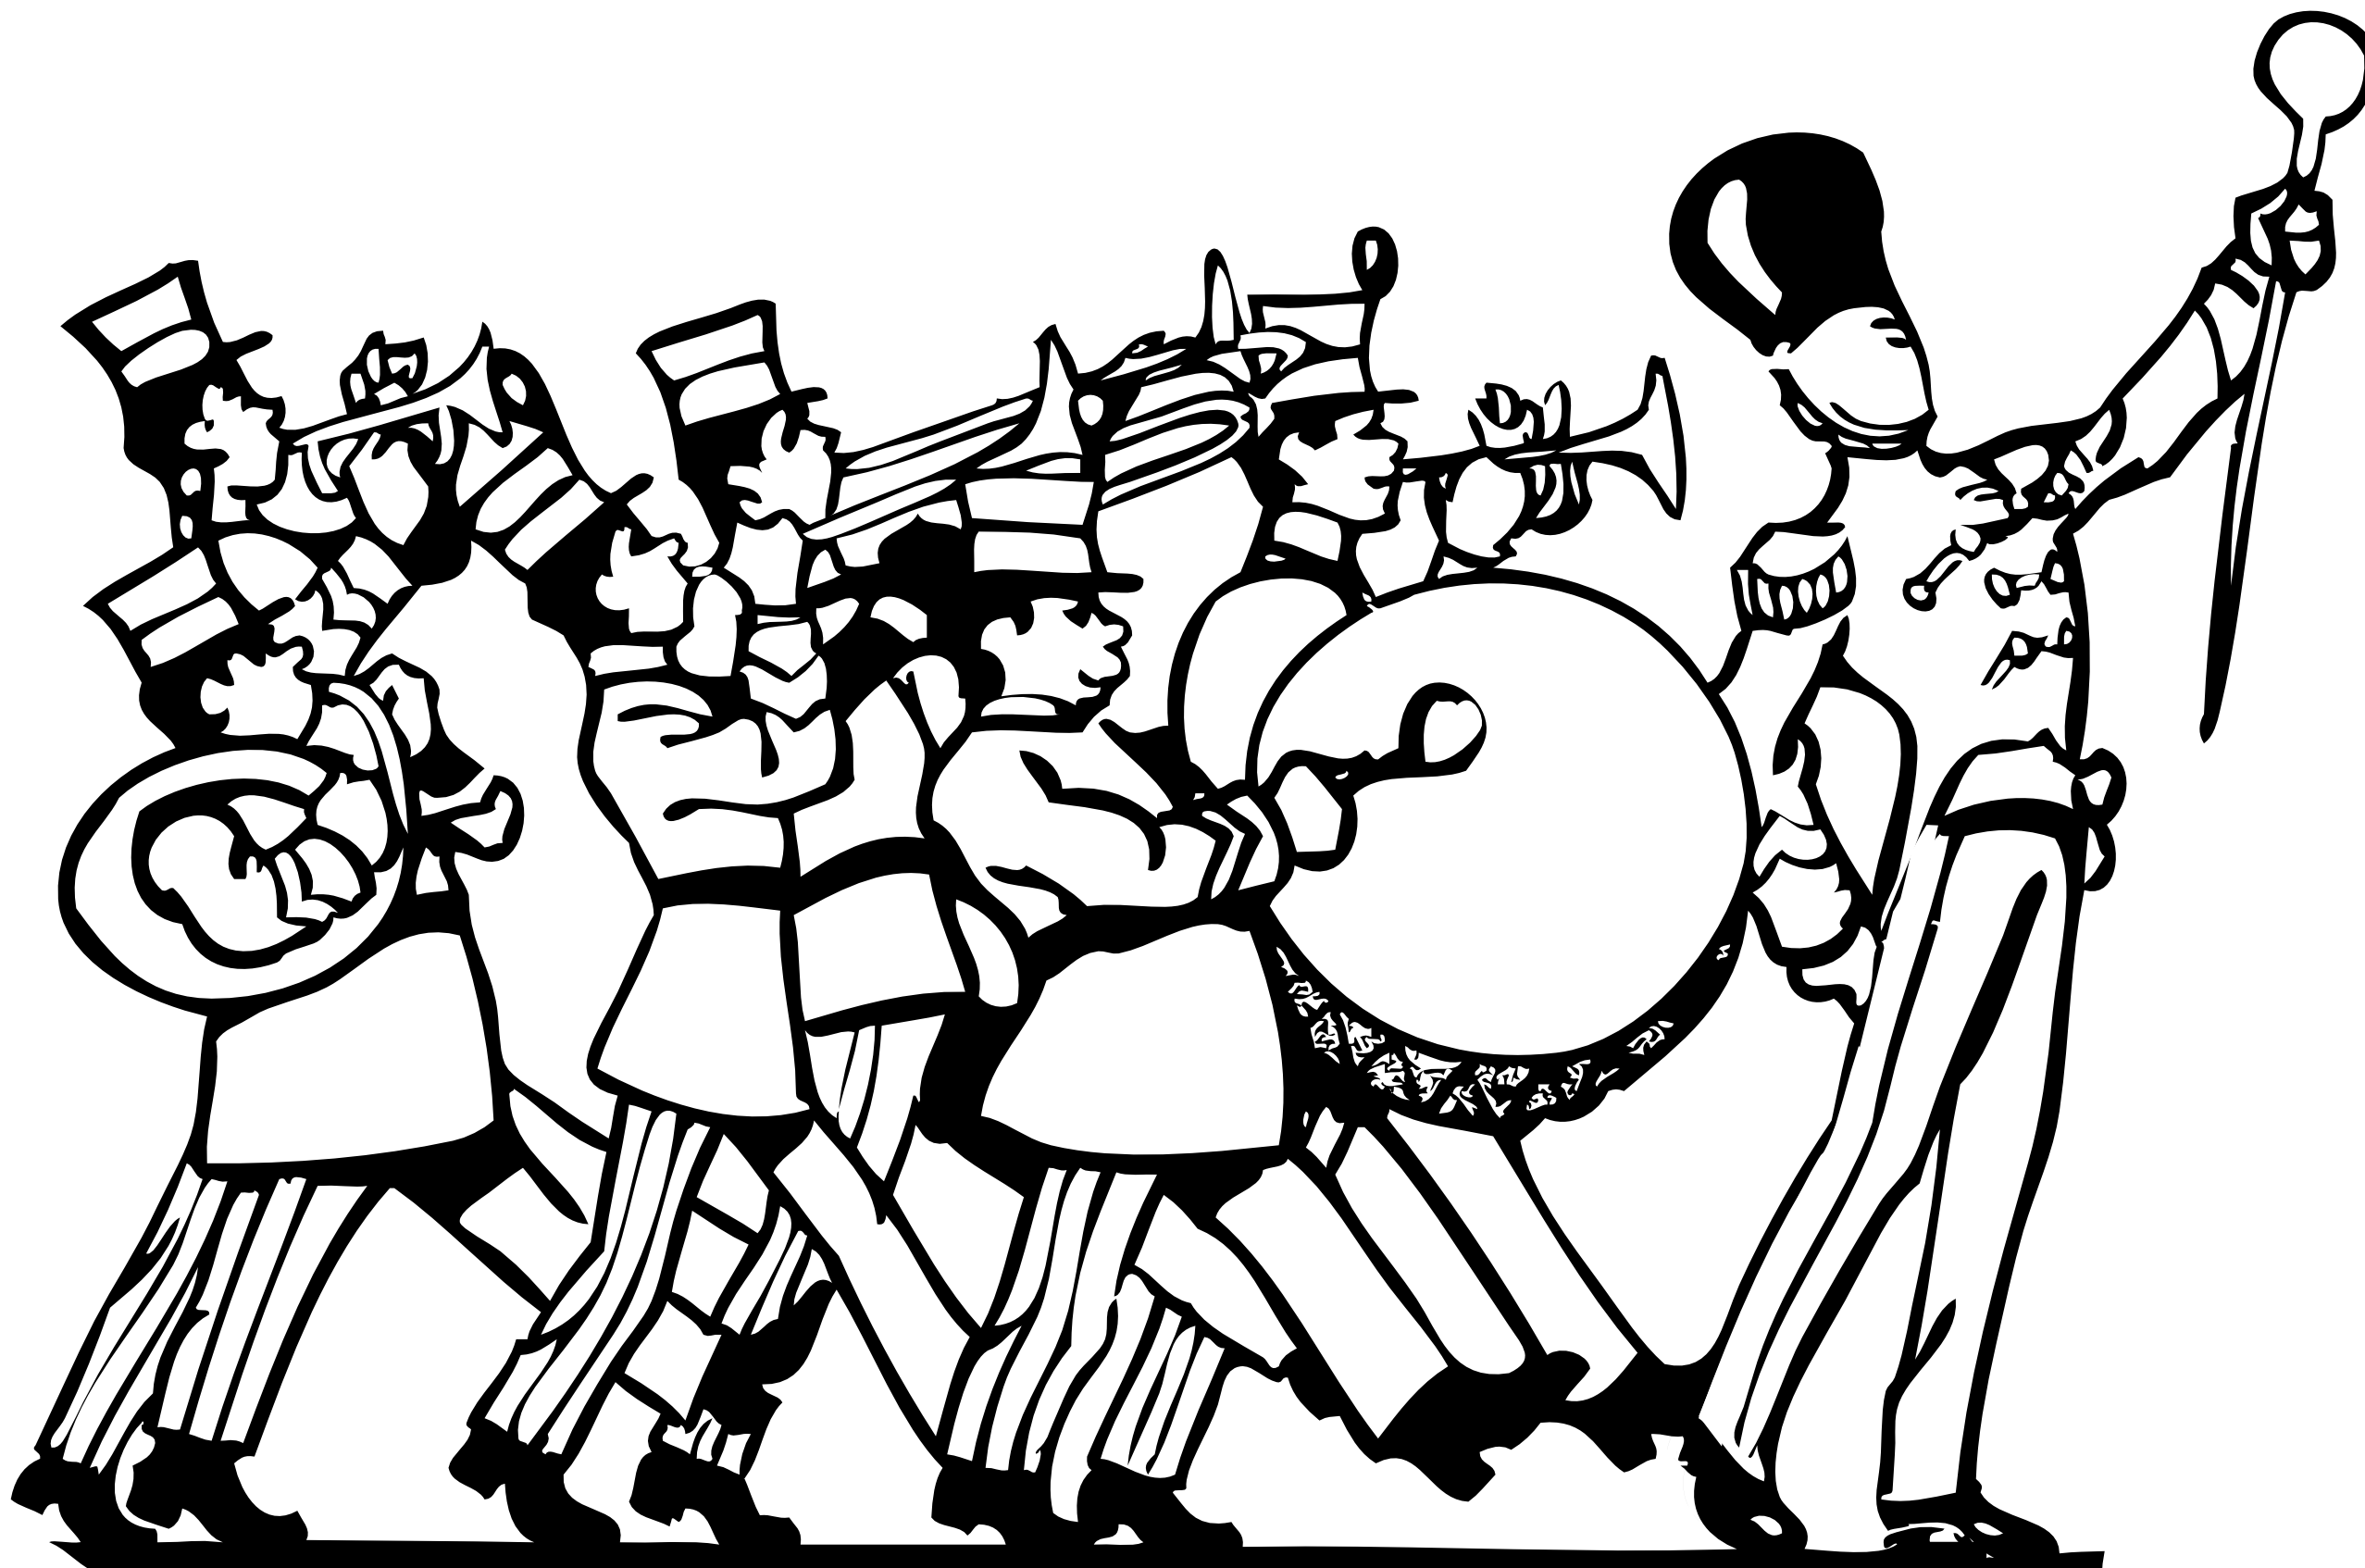 Cartoon Marching Band Marching Band Instruments